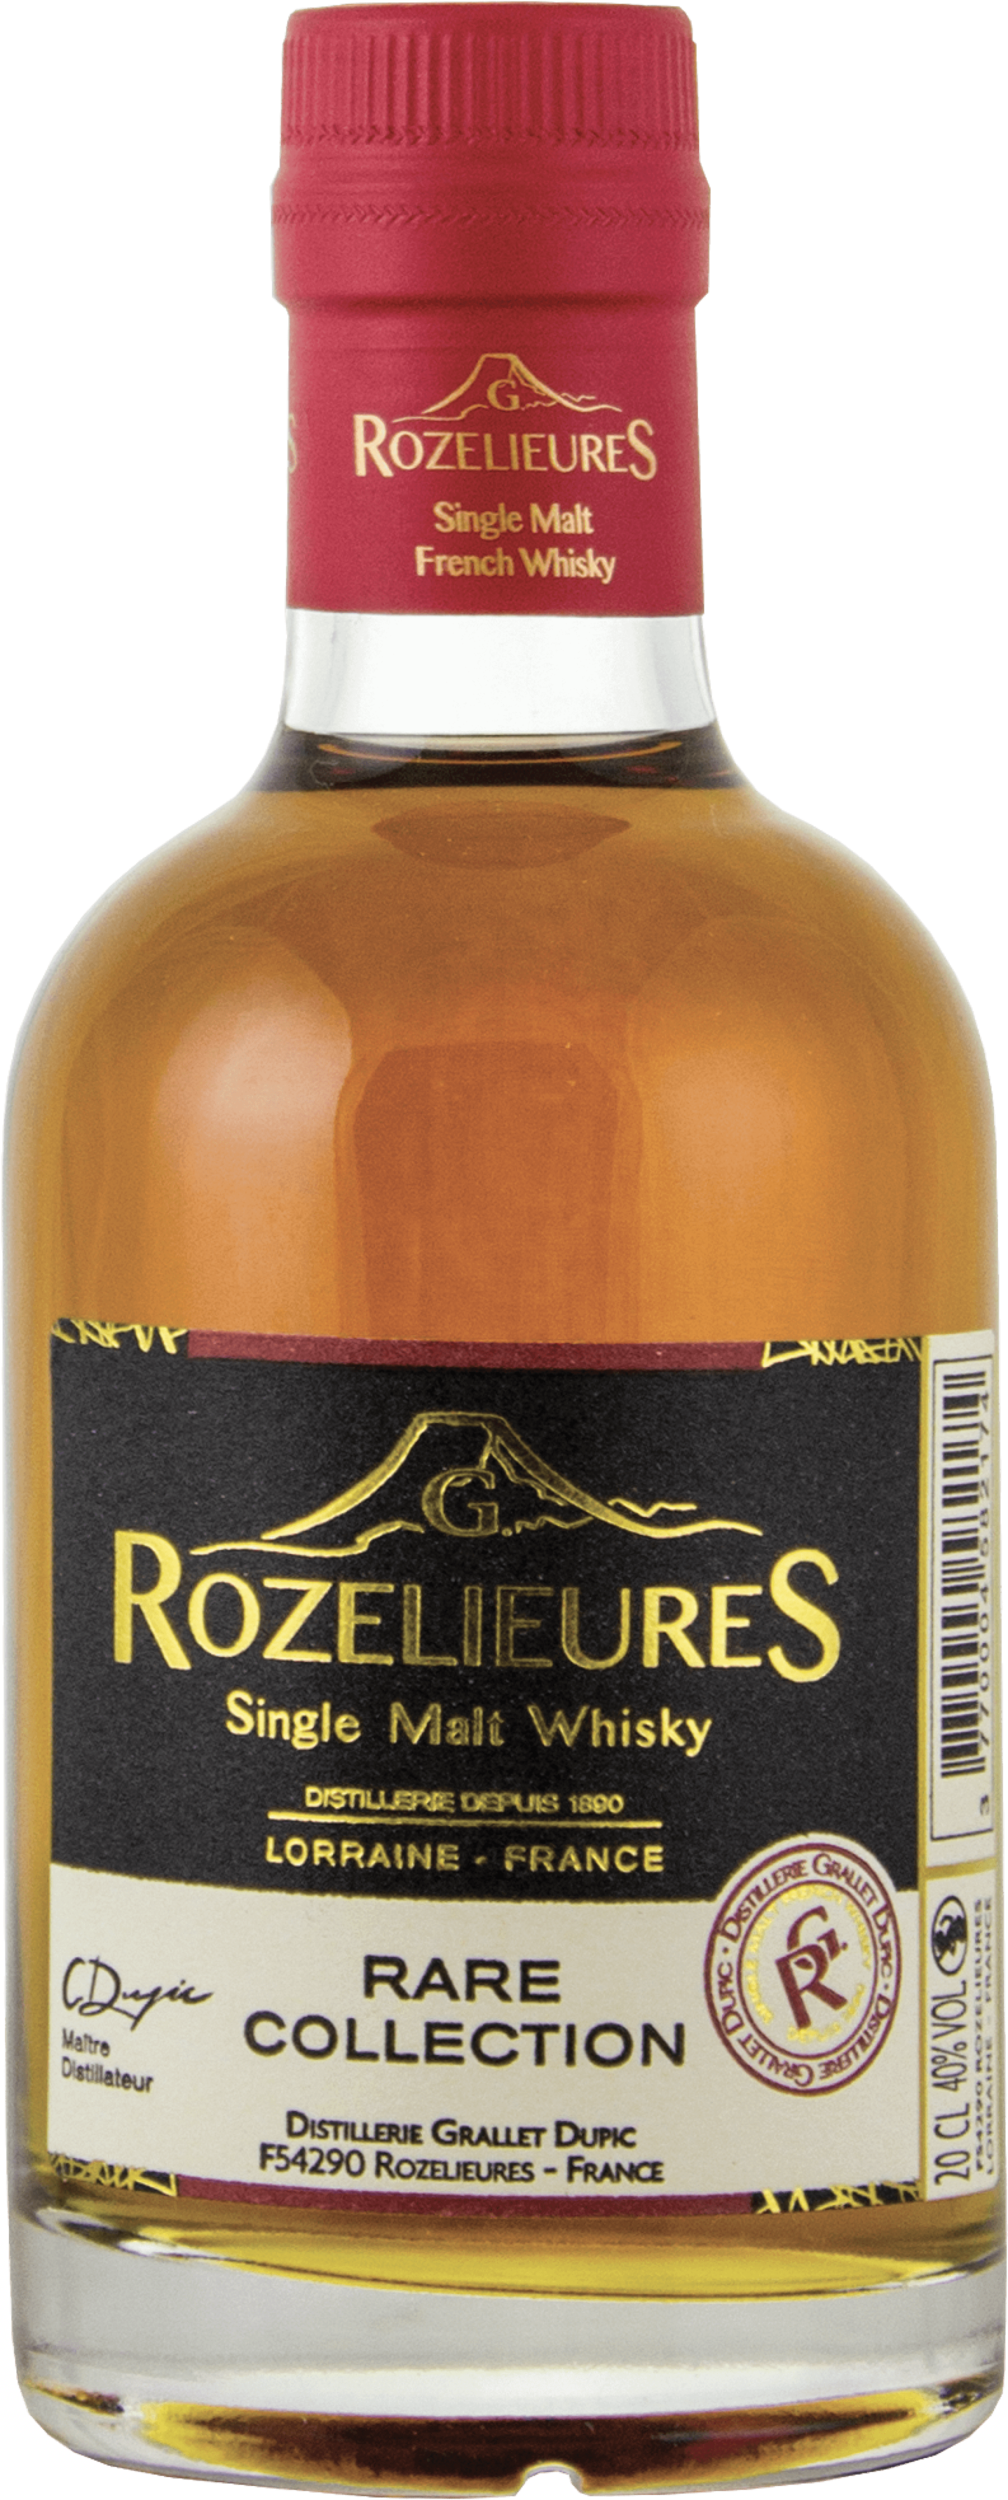 ROZELIEURES, Rare Collection 20CL